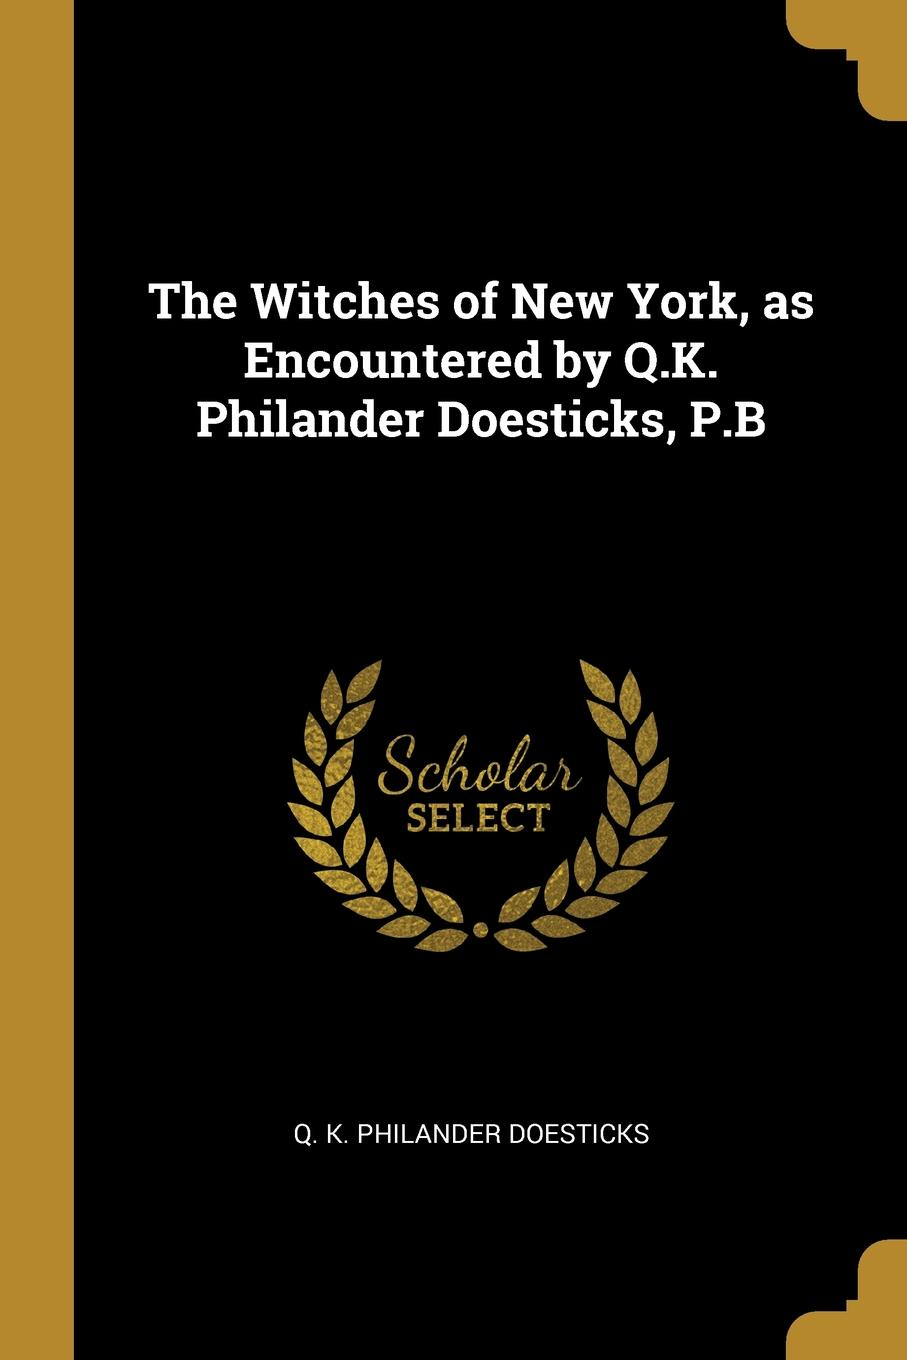 Q. K. Philander Doesticks The Witches of New York, as Encountered by Q.K. Philander Doesticks, P.B q k philander doesticks plu ri bus tah a song that s by no author a deed without a name